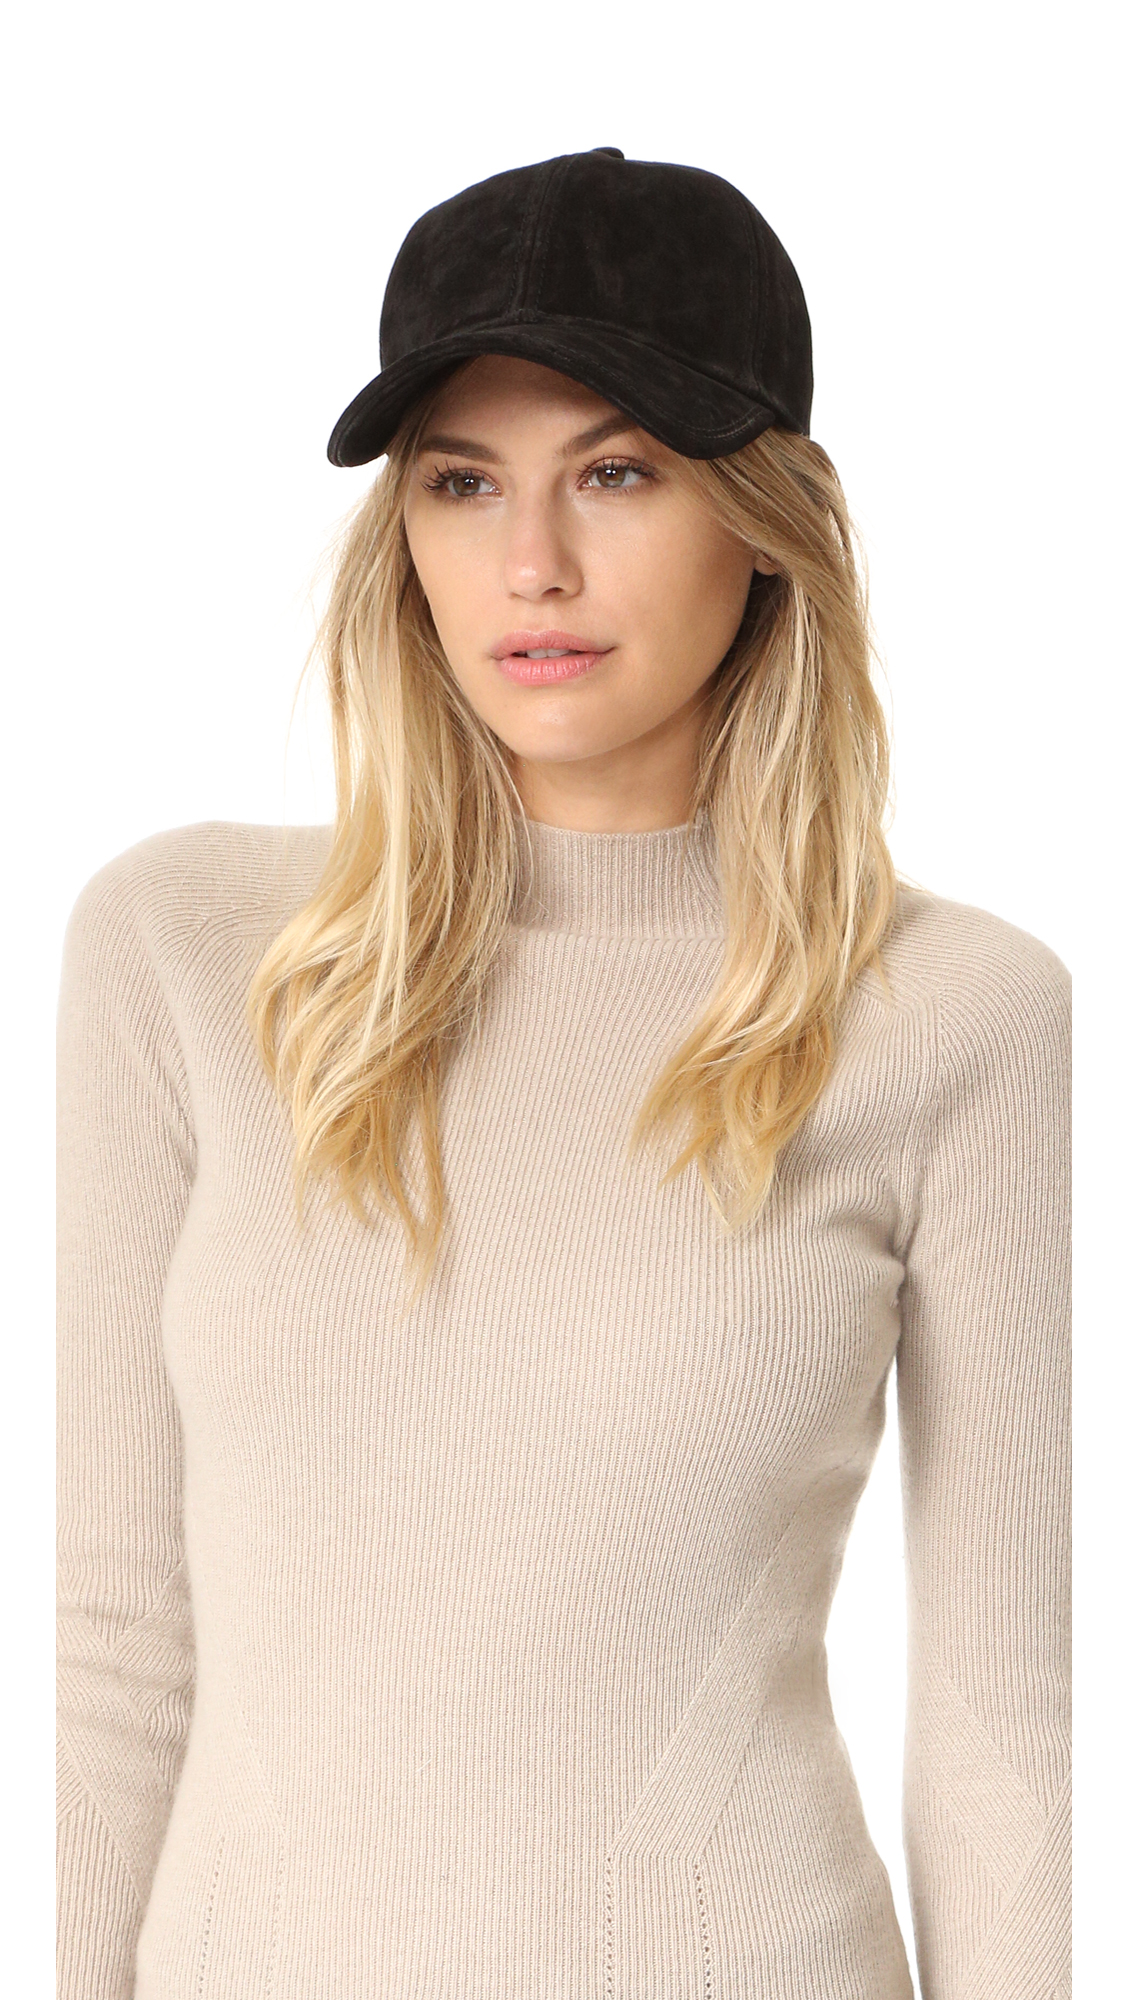 Rag & Bone Marilyn Baseball Cap - Black Suede